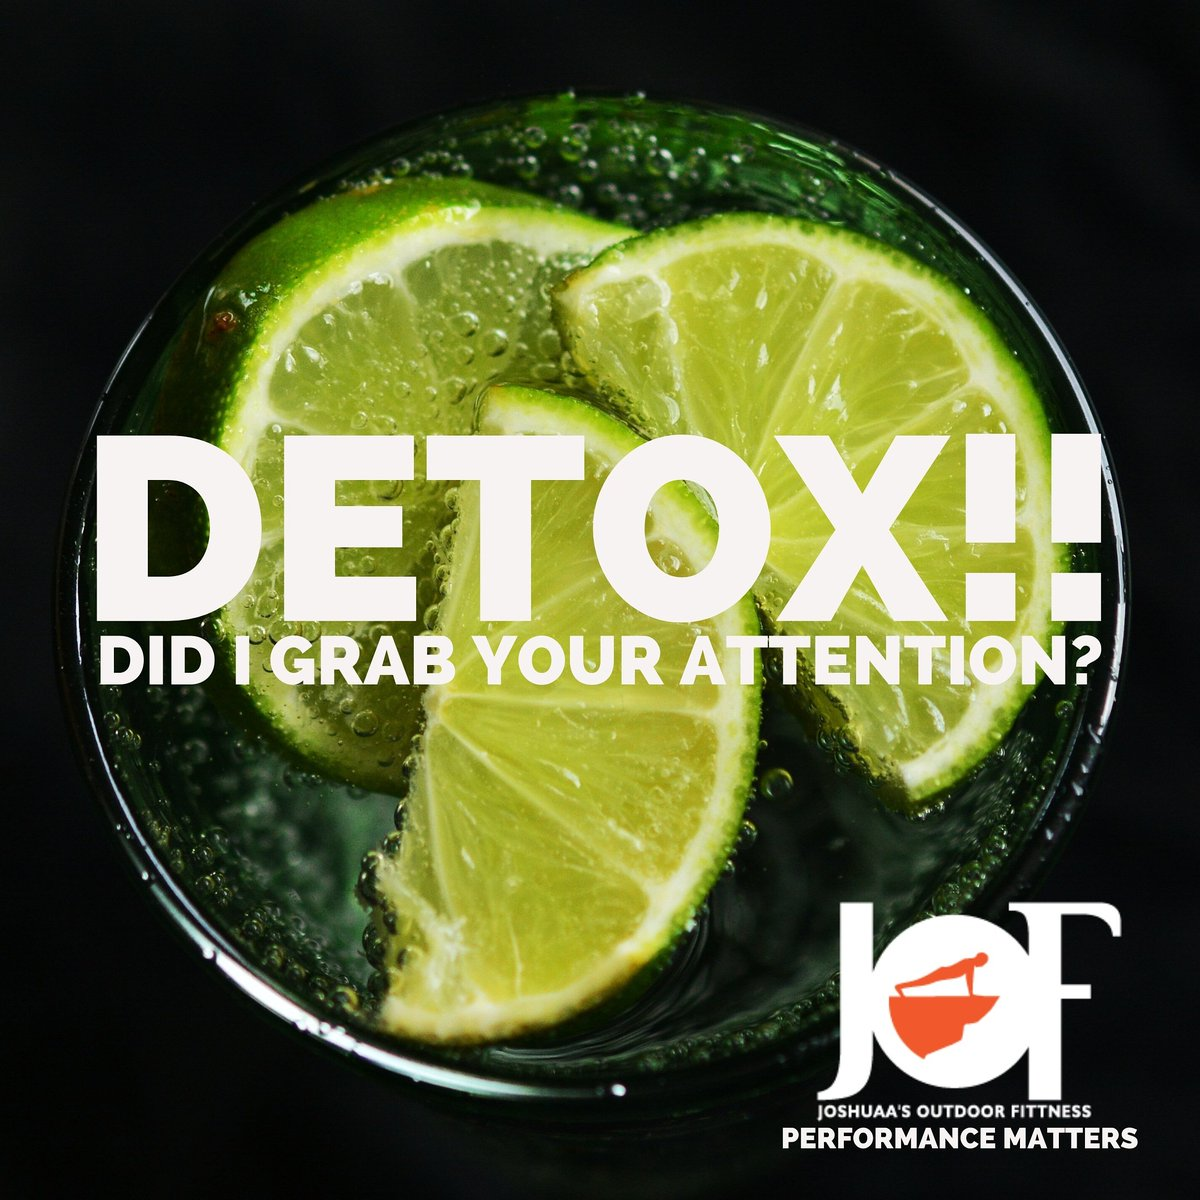 Detoxification (#detox) - is the physiological removal of #toxic substances from a living organism. Everyone #poops man! It's not rocket #Science for the body to remove waste. What comes in goes out. SAY NO TO FAD DIETS!! #jof #detox #Juice #Diet #fruits #Health #lifestylepic.twitter.com/IyQXhUPM3o